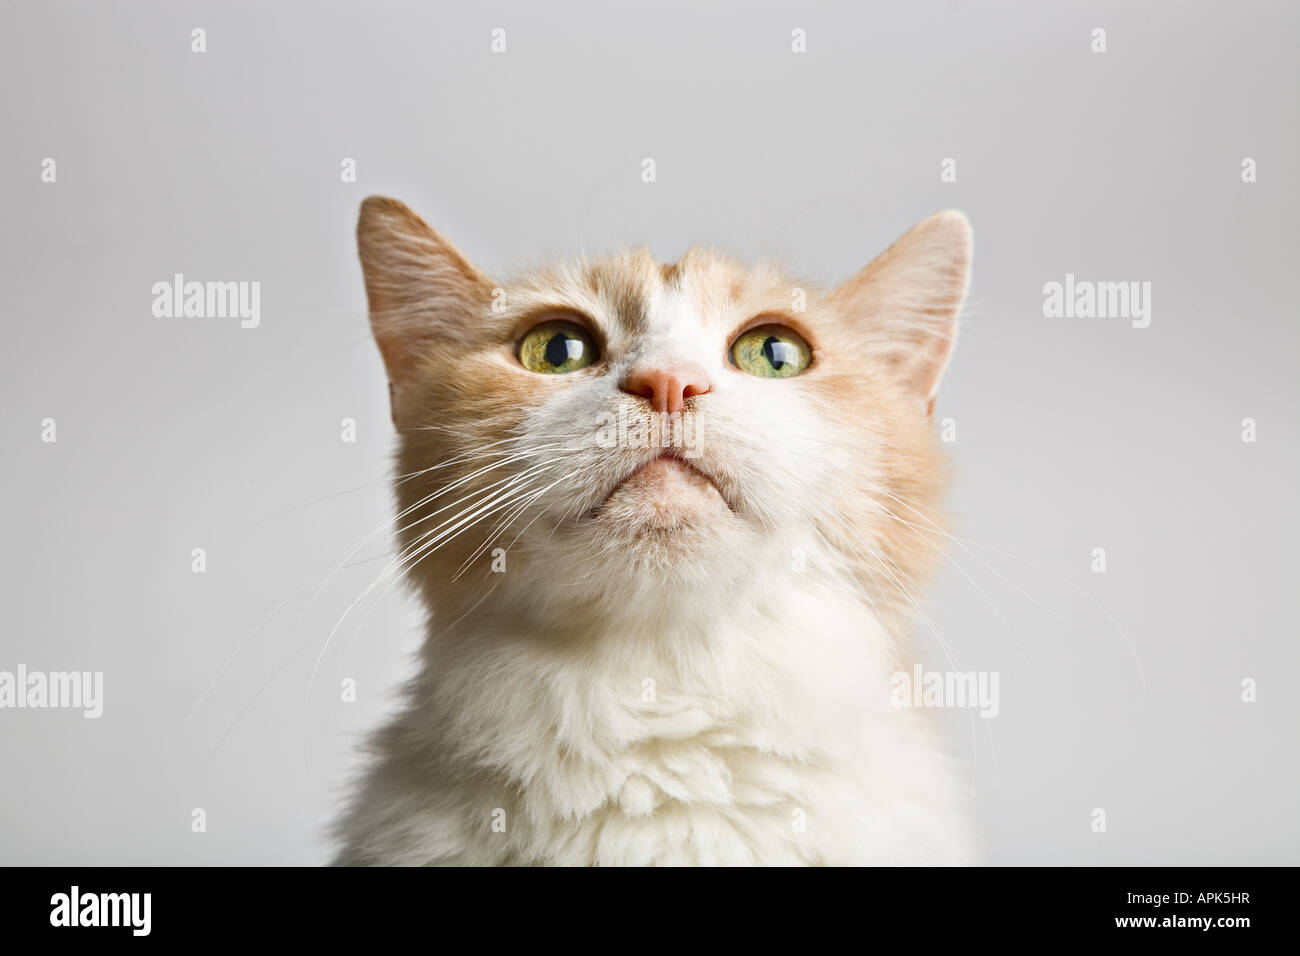 f005a5fed6 Turkish Van - Cat Stock Photo  15810466 - Alamy